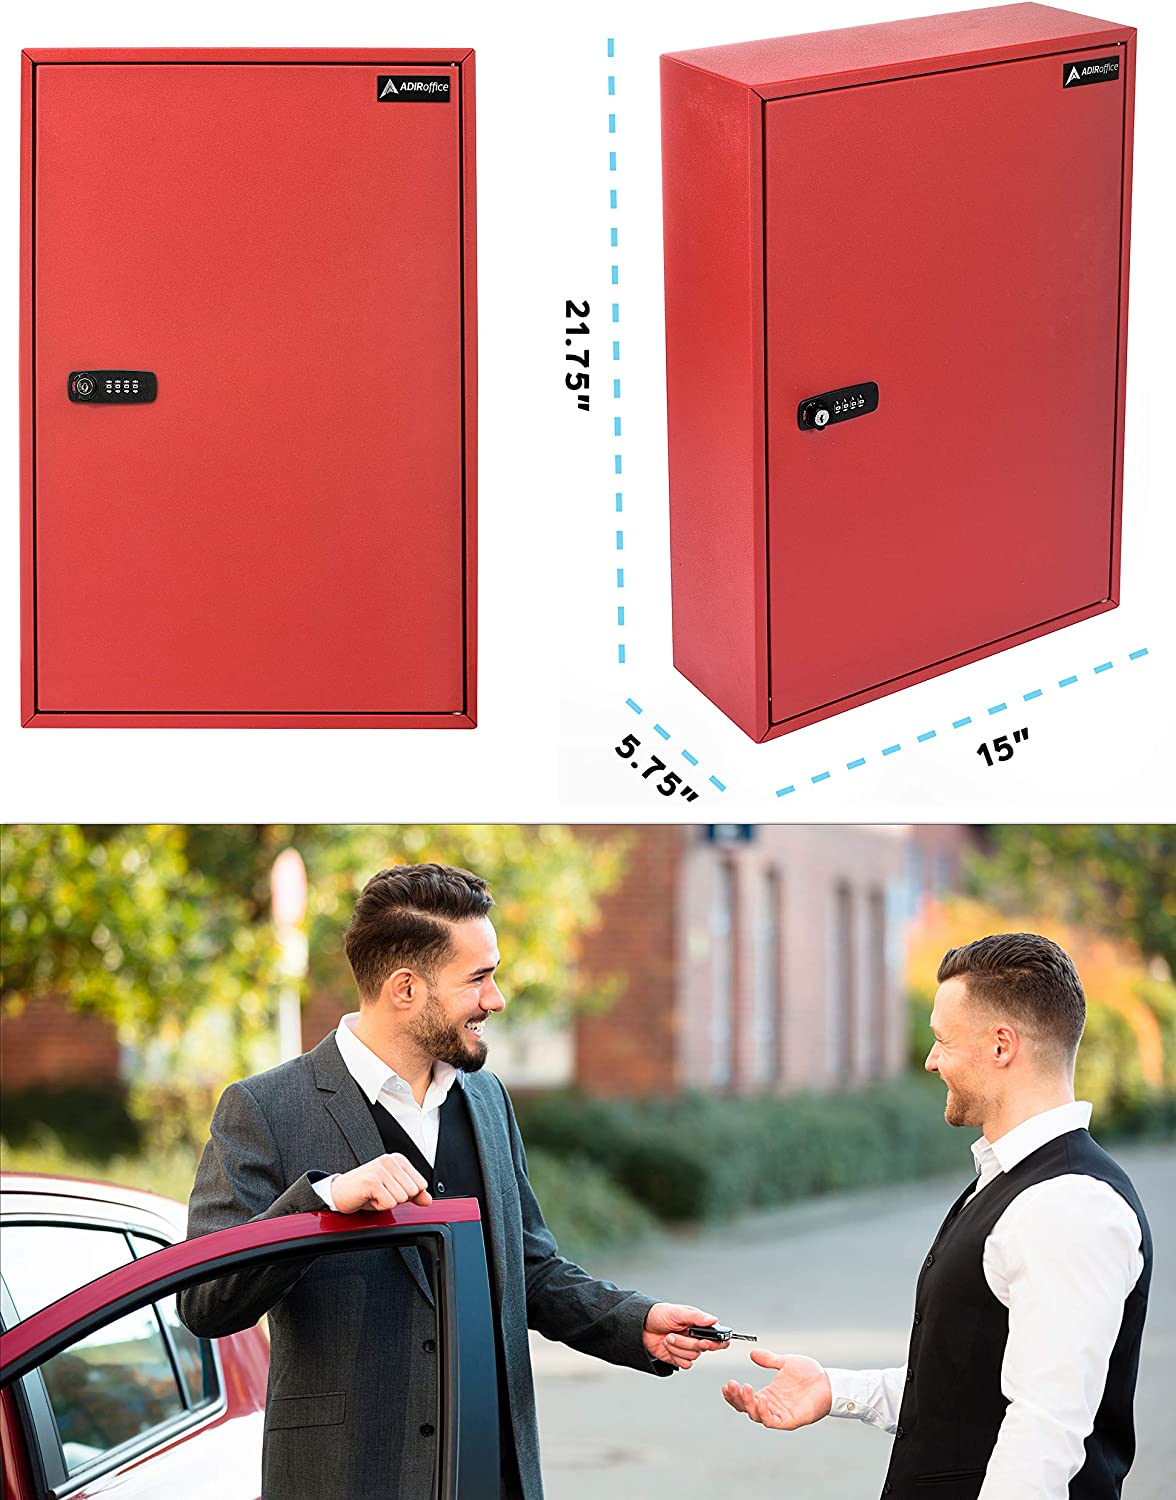 RED AdirOffice 200 Key Storage Cabinet with Combination and Key Lock Heavy Duty Secured Storage Steel- Ideal for Homes Hotels Schools /& Businesses